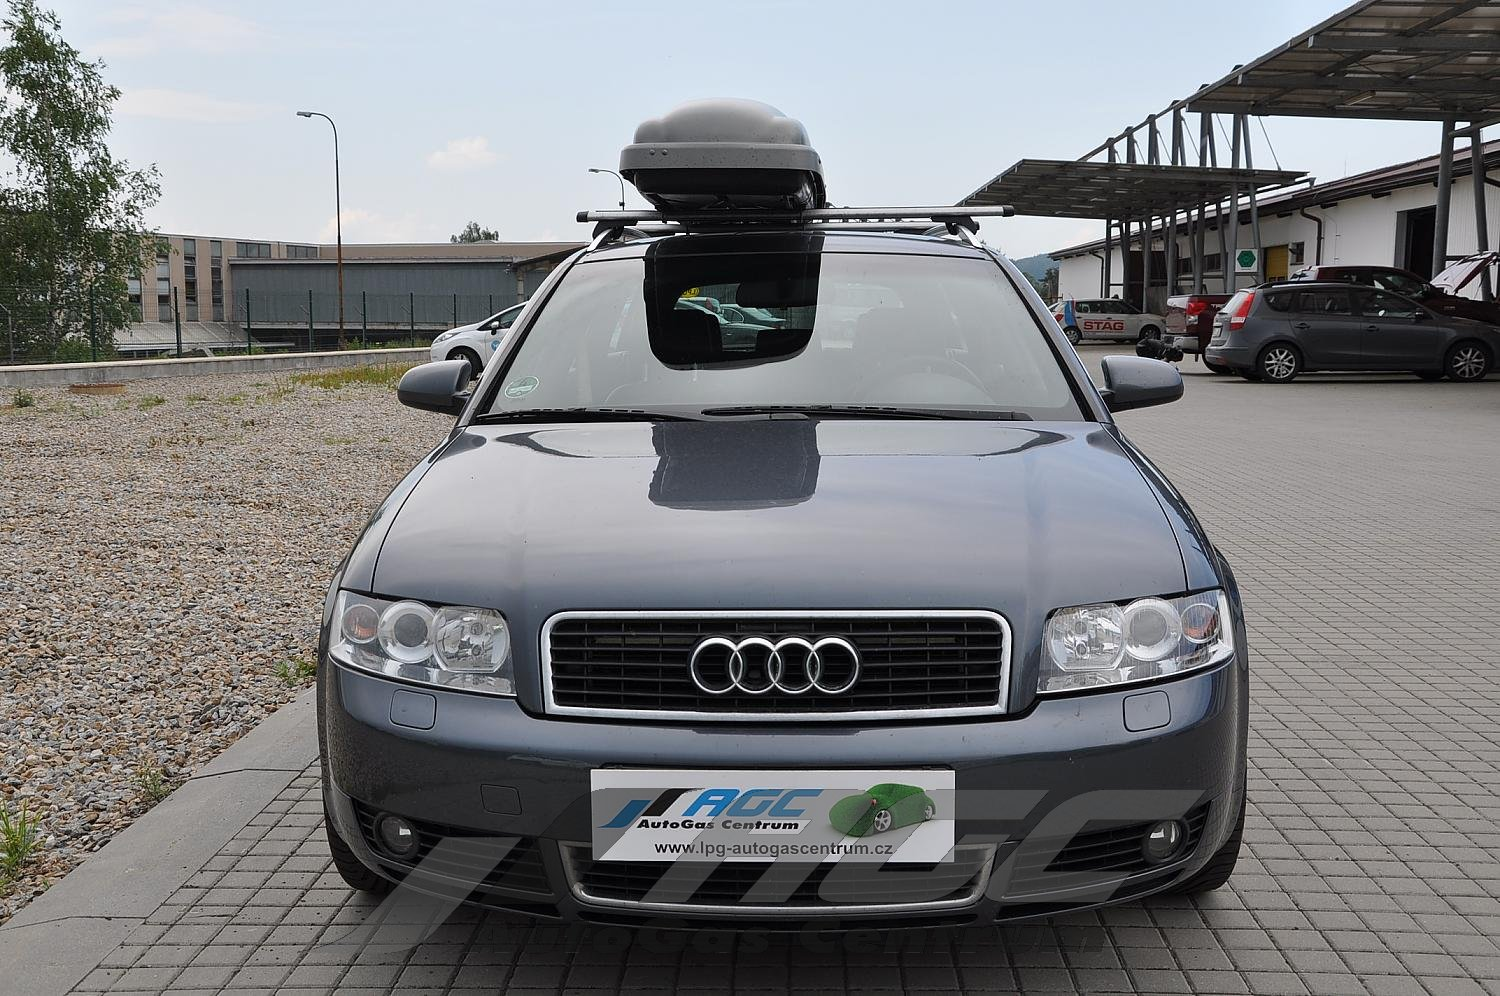 Conversion Lpg Audi A4 Avant 1 781 Cm³ Audi Photo Gallery